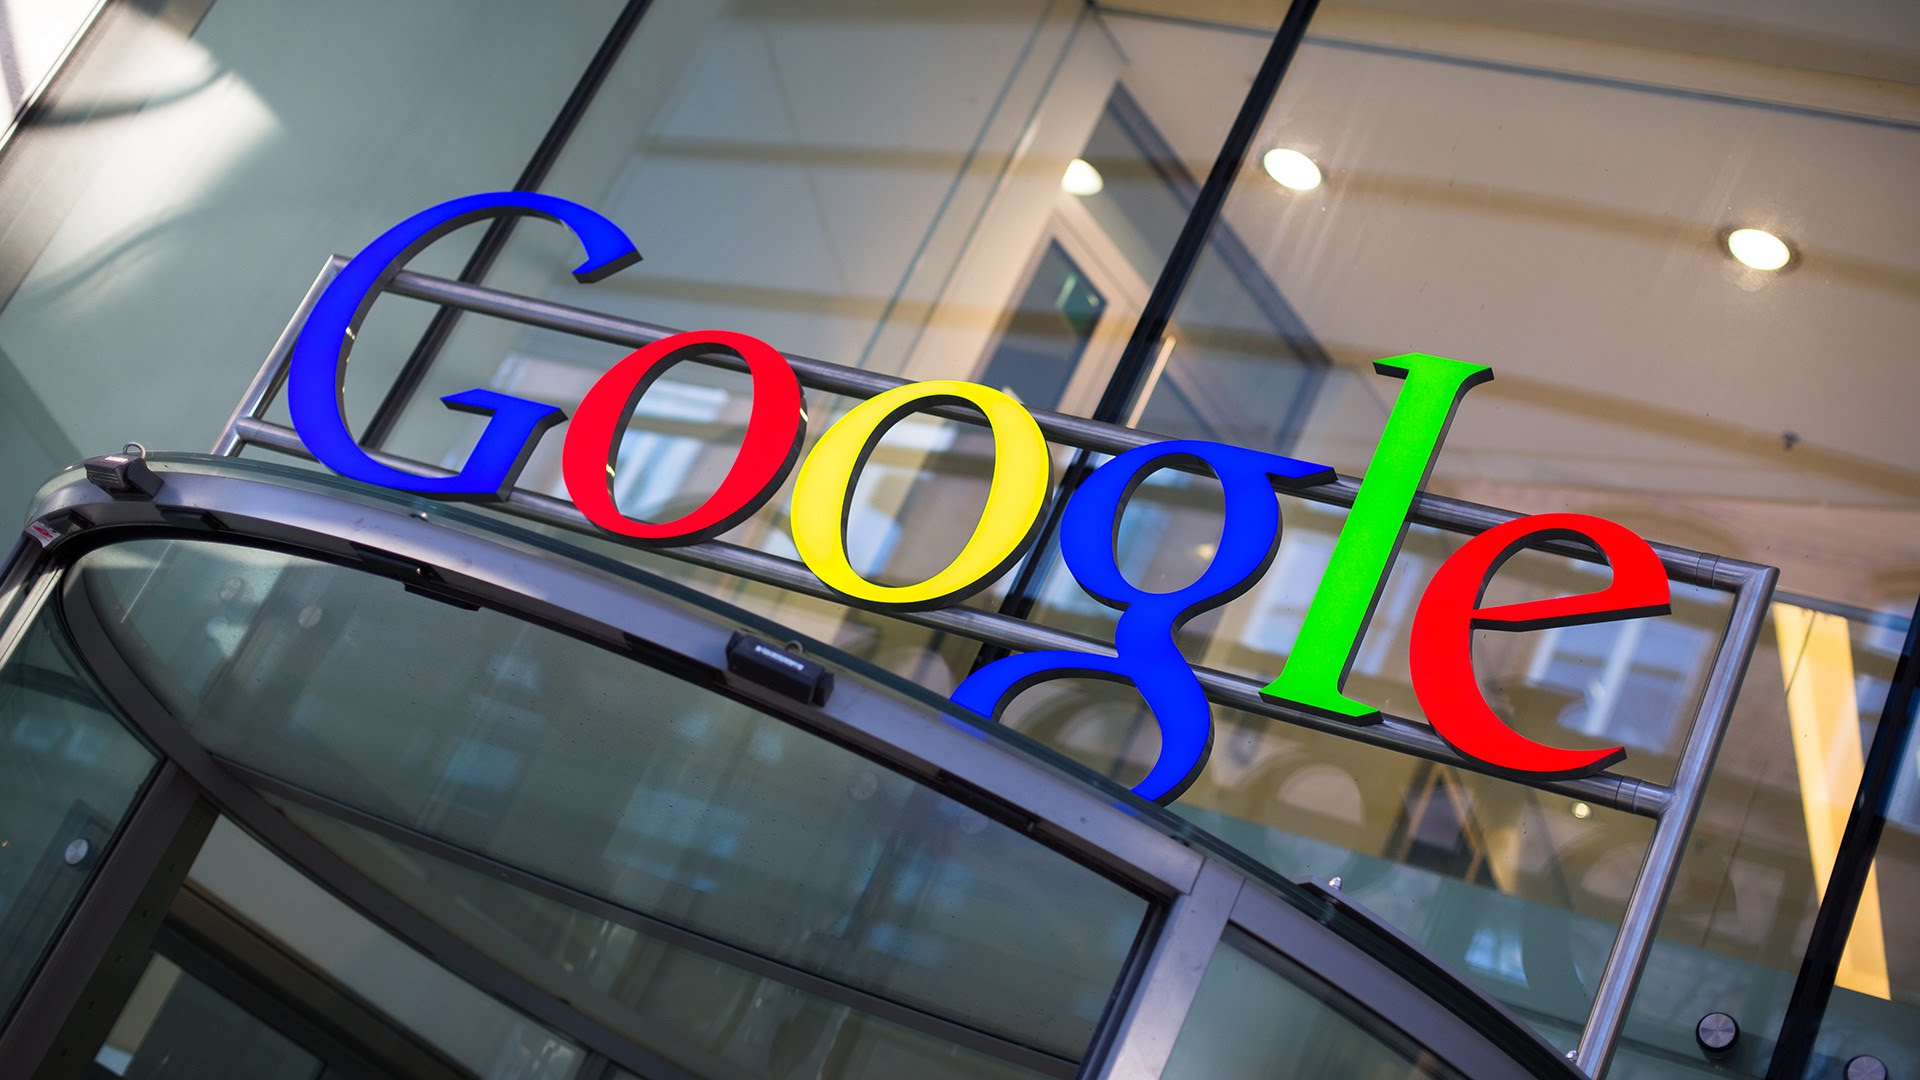 Google is introducing a fee for its apps to mobile device manufacturers in Europe.